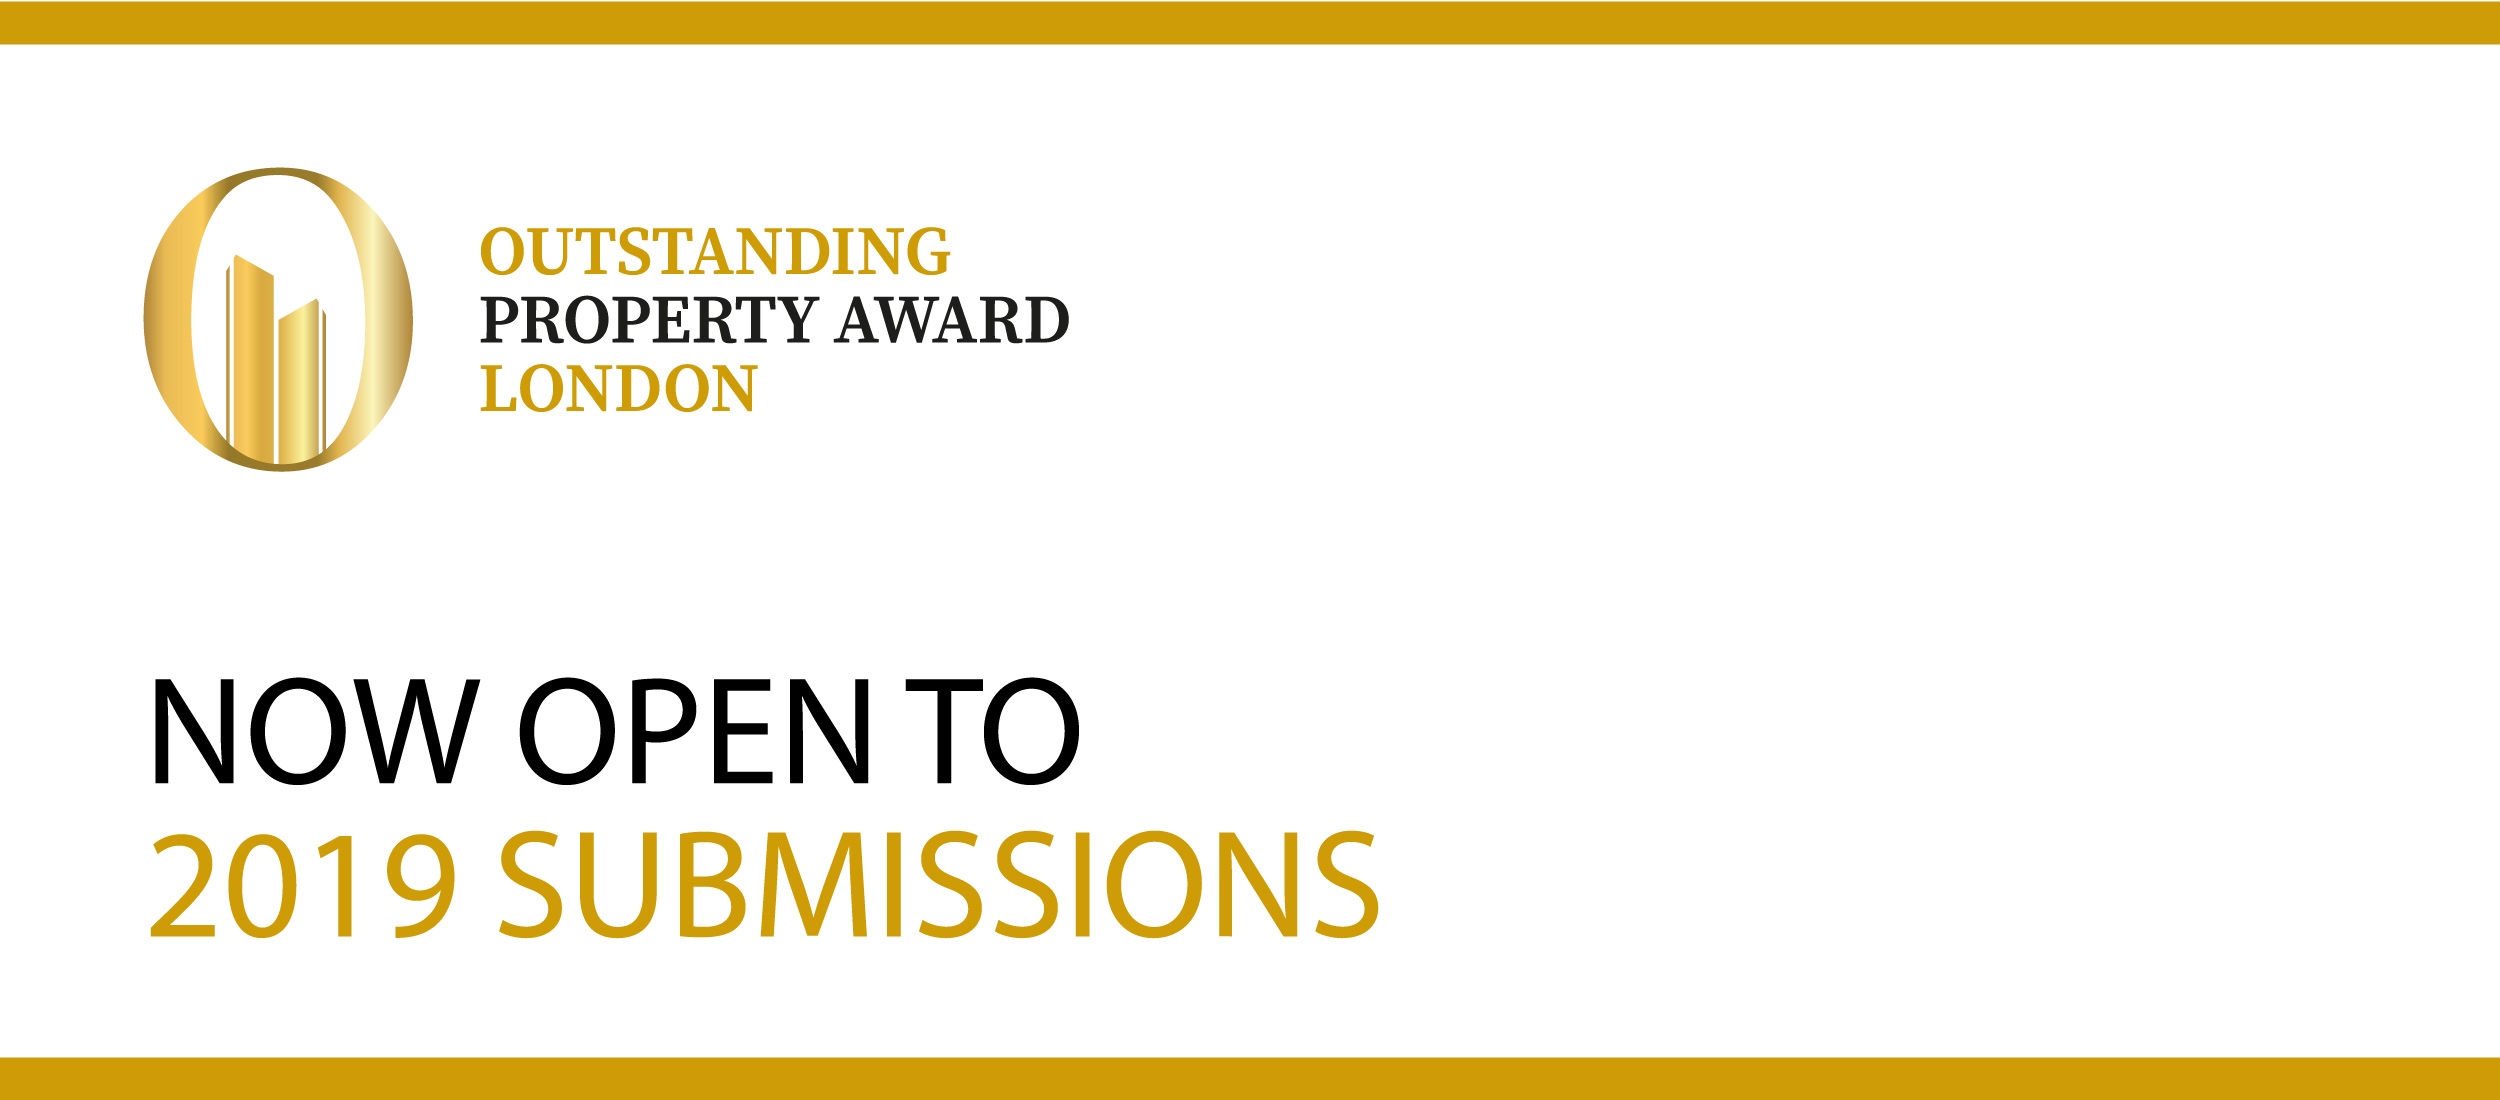 Outstanding Property Award London now open to submissions